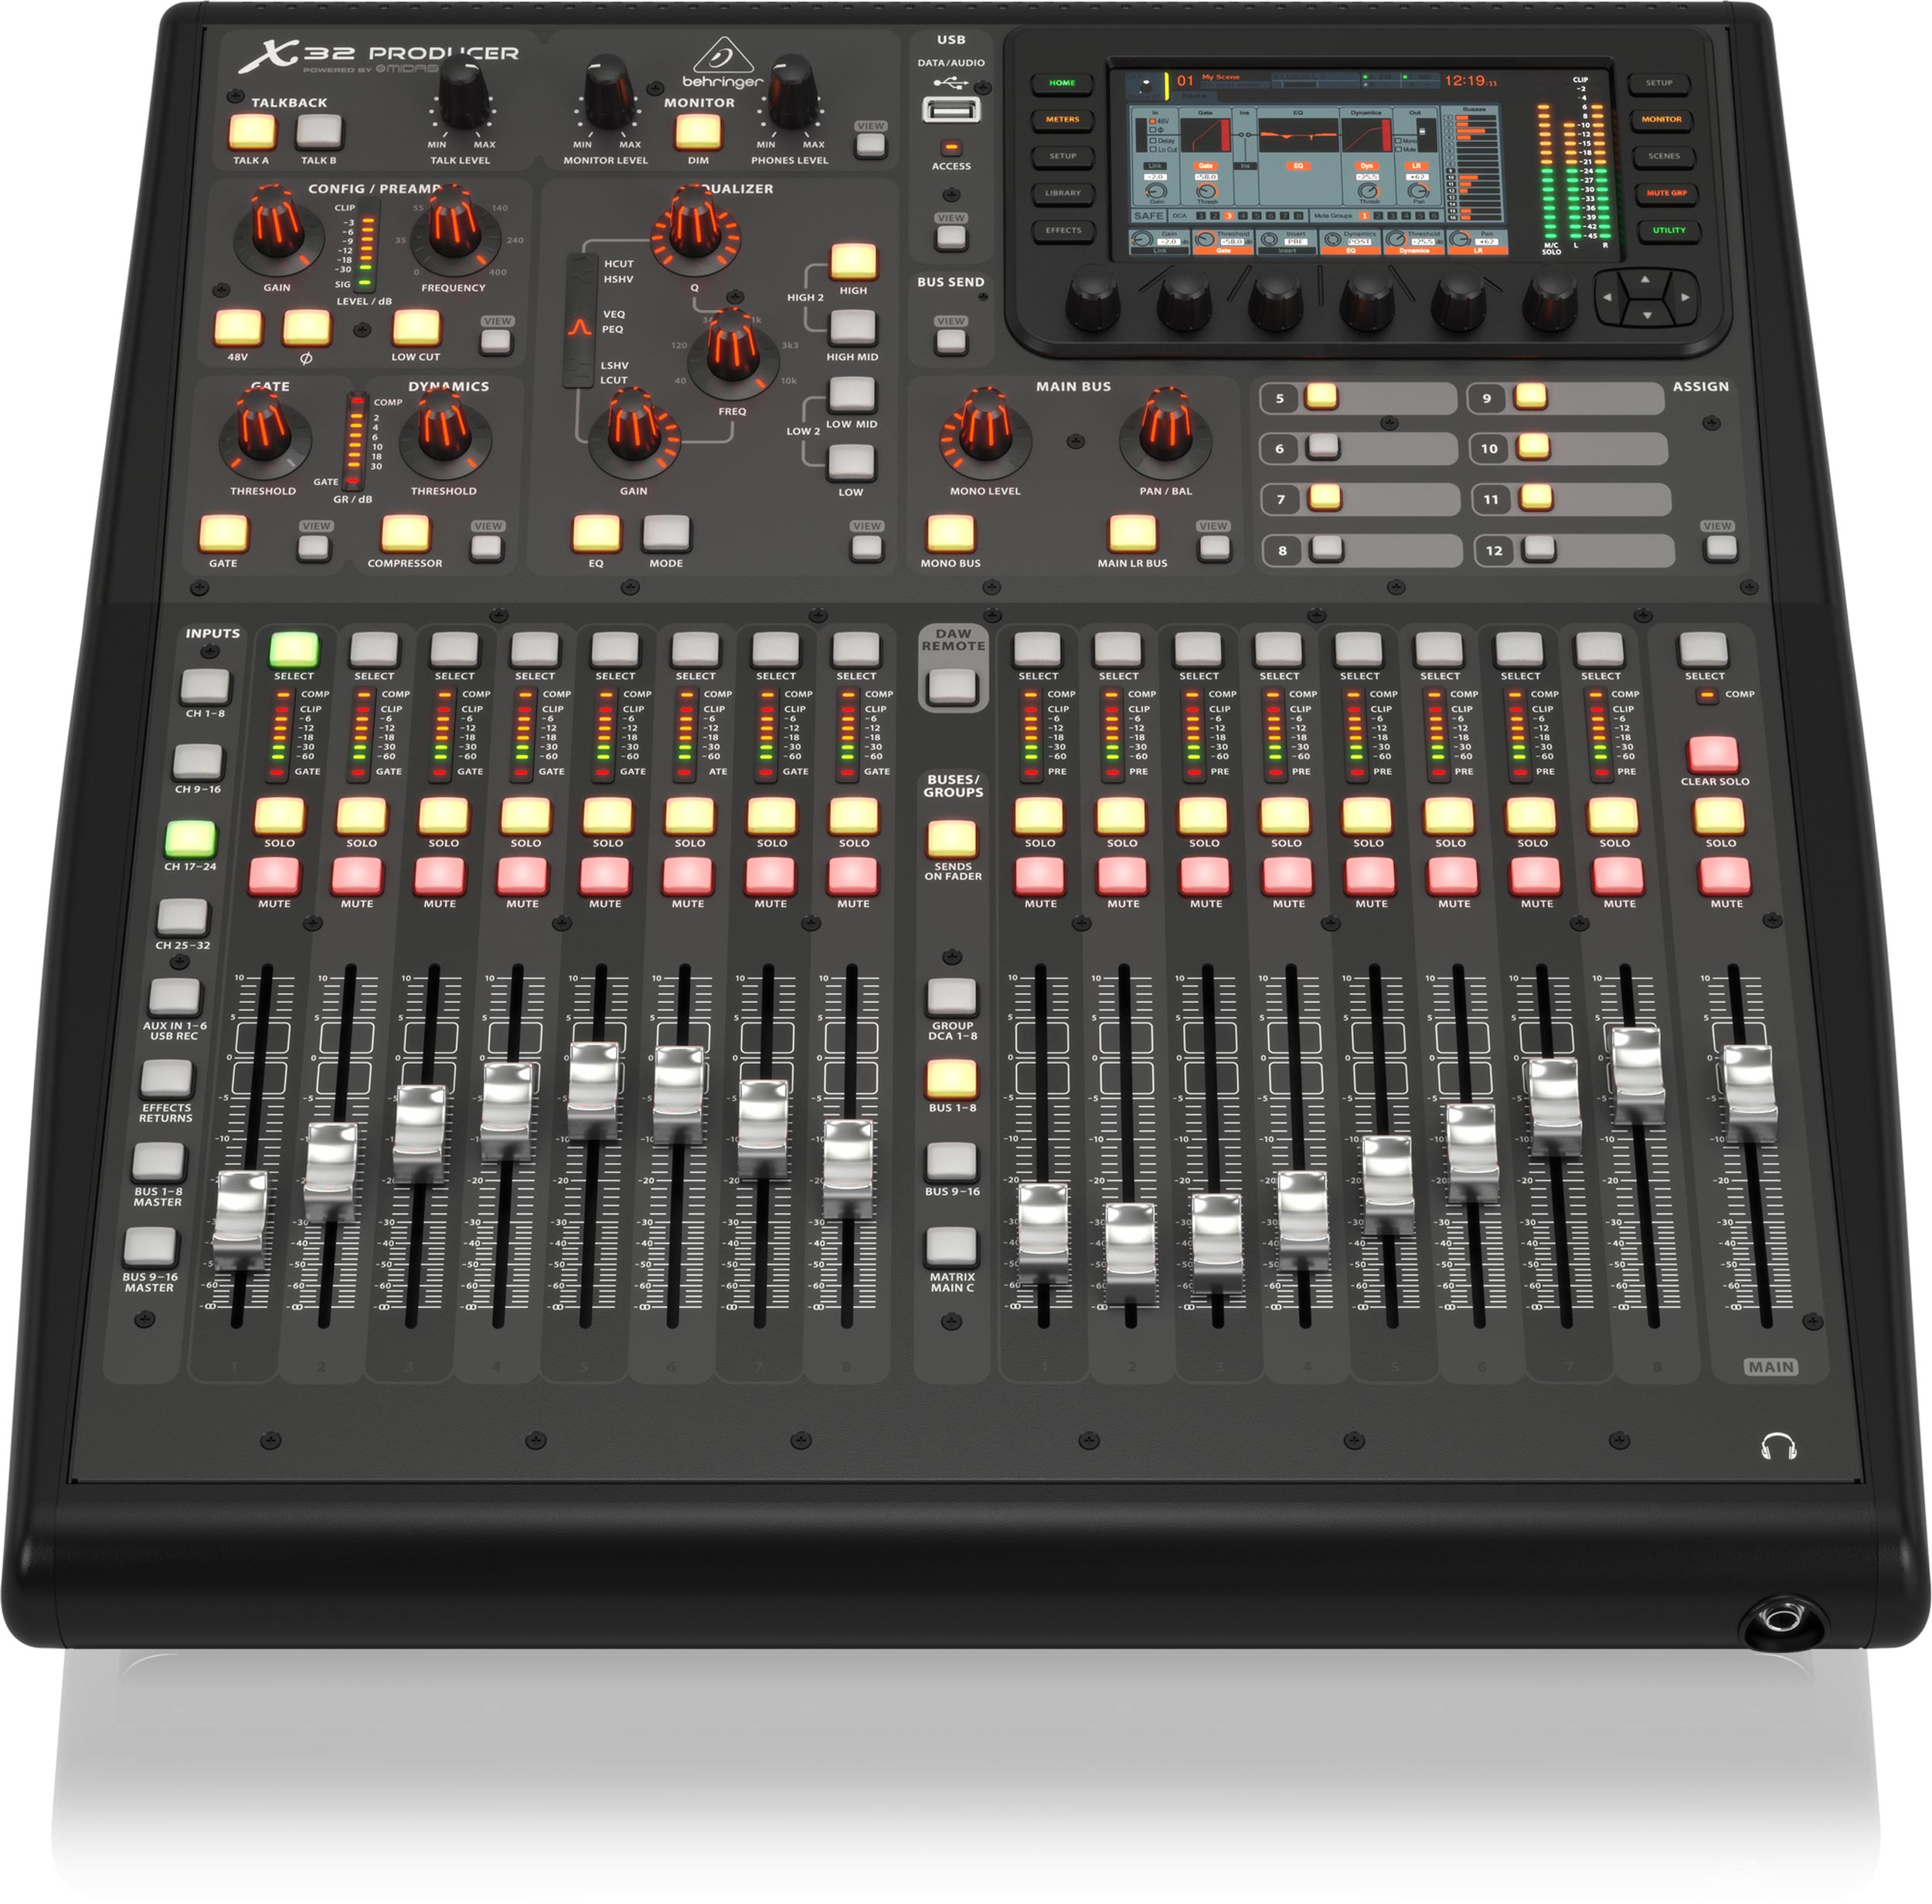 BEHRINGER X32 PRODUCER 40-Input 25-Bus Rack-Mountable Digital Mixing Console